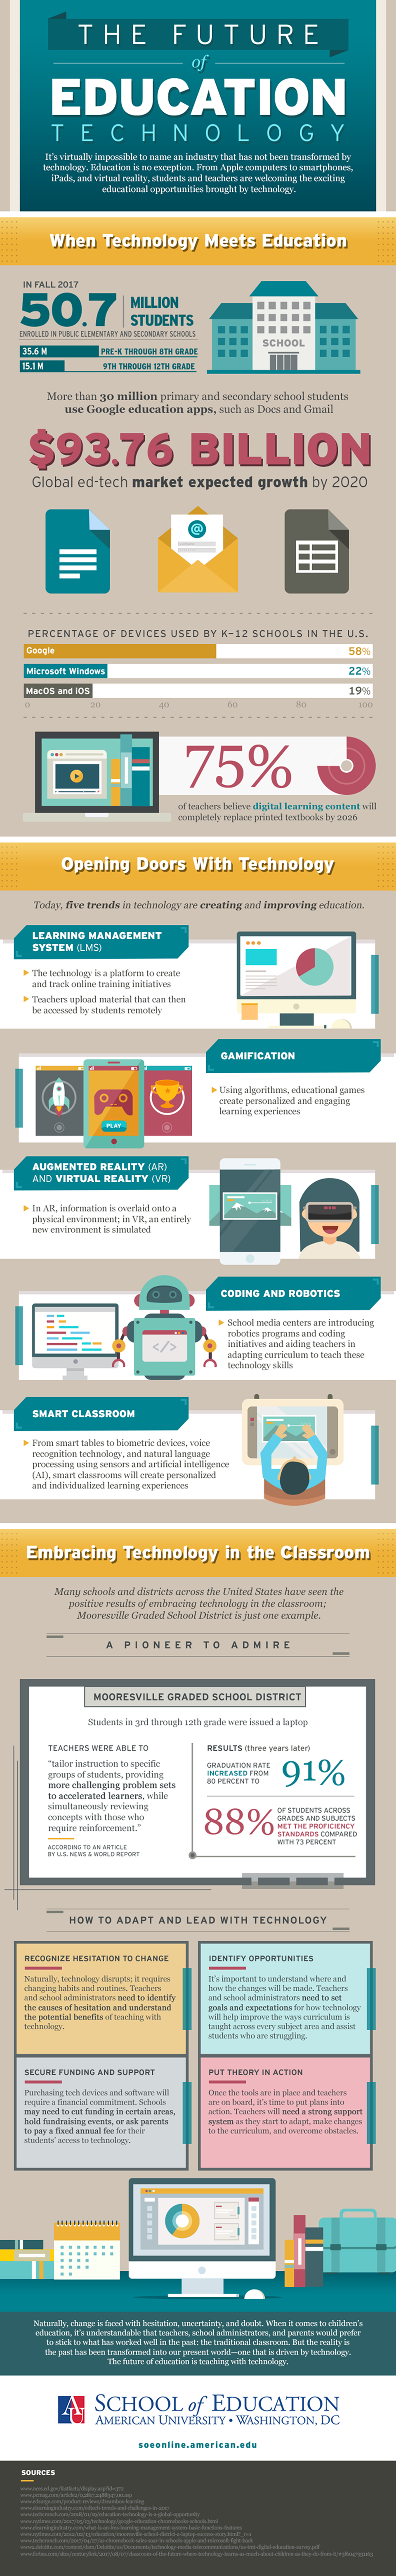 Adapt and Lead: How Education Technology is the Only Way Forward - Infographic